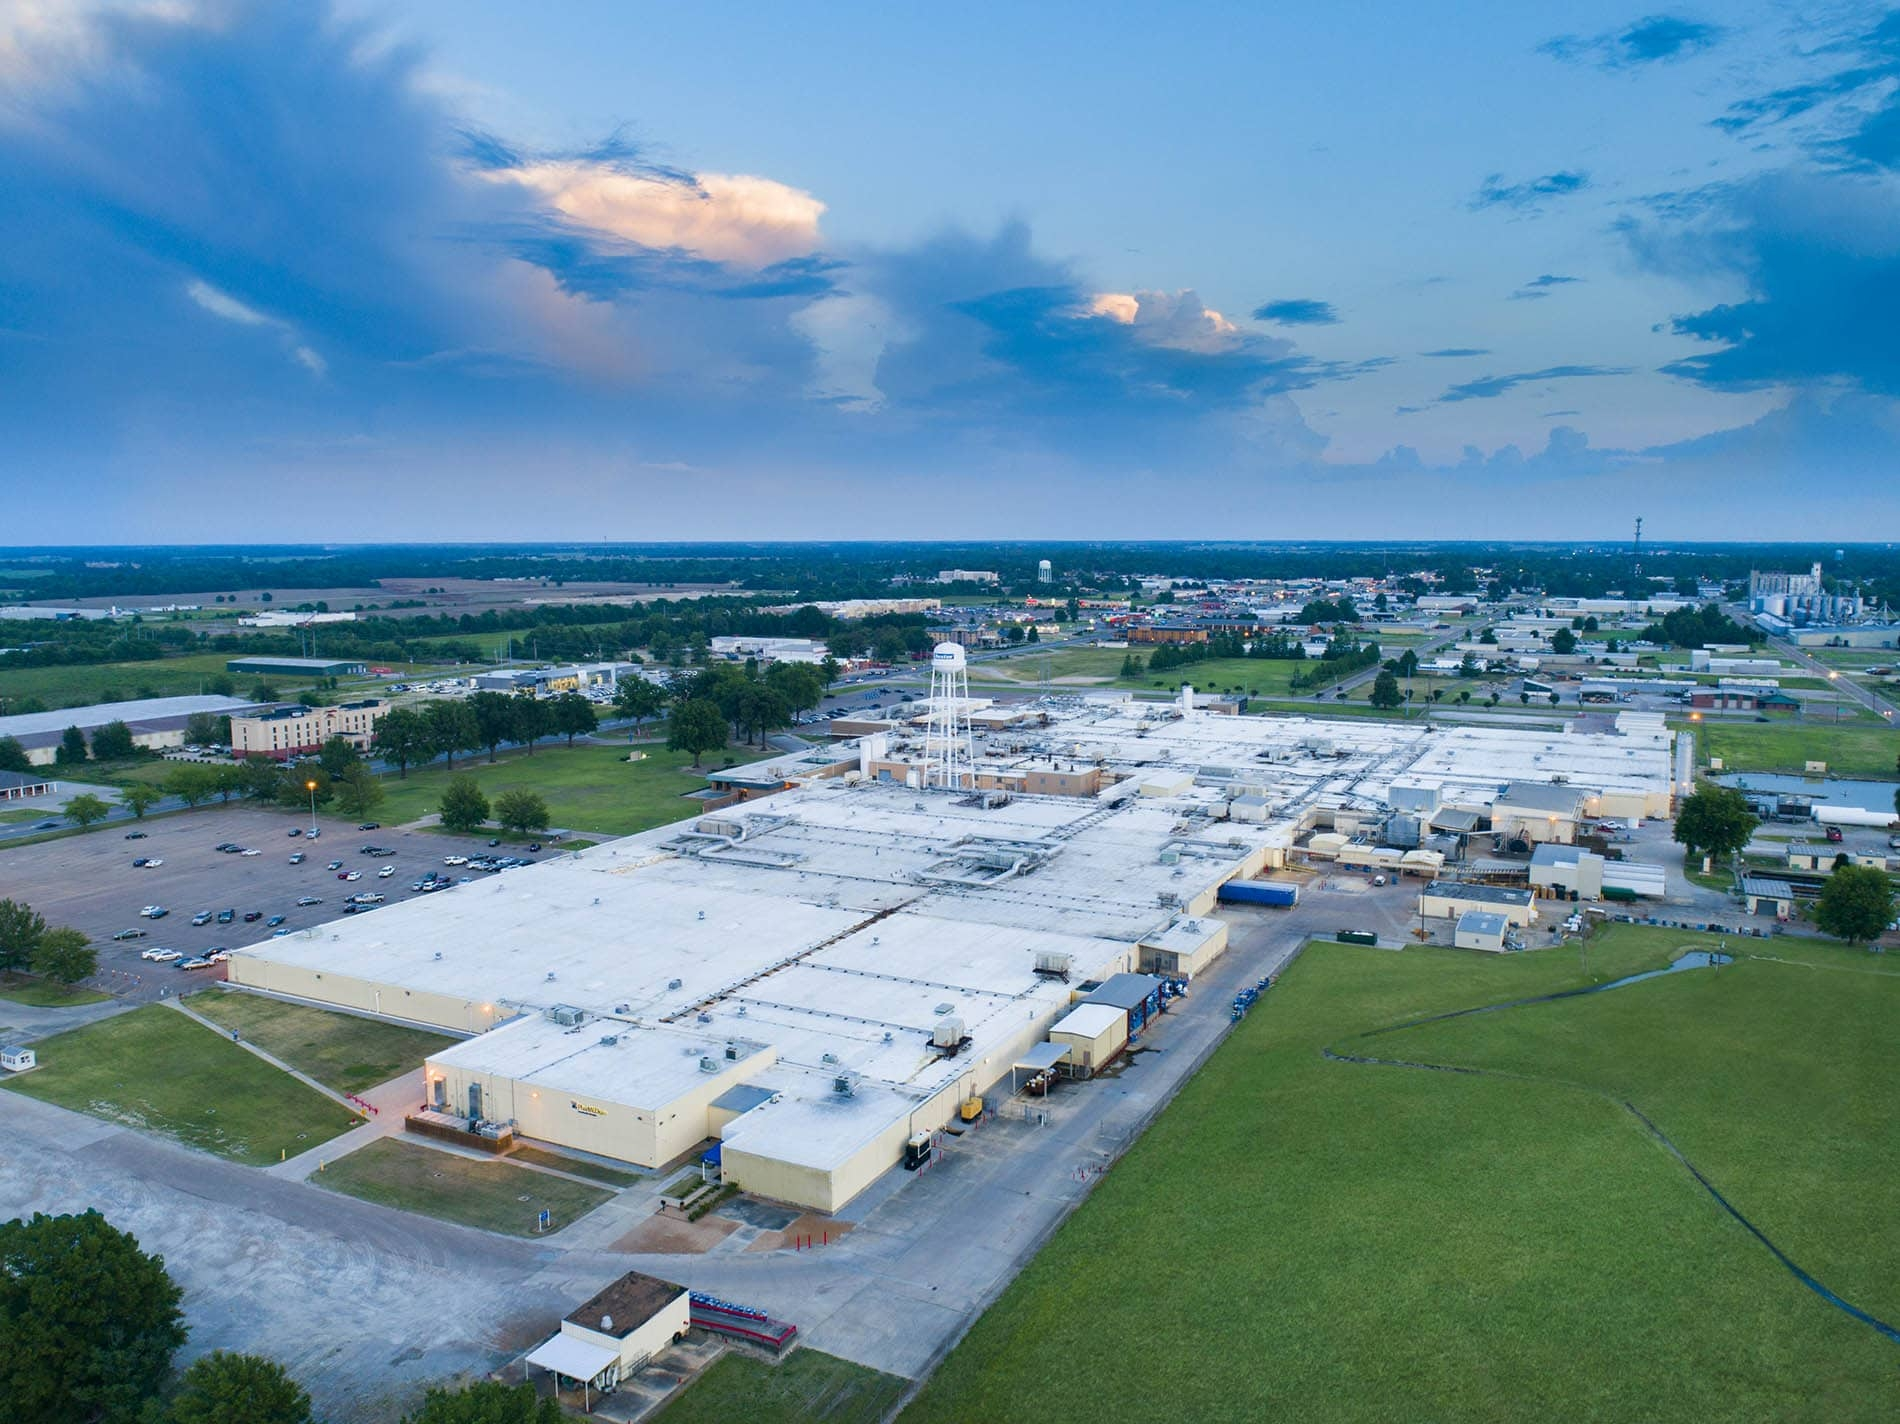 Drone Photograph taken of Commercial Factory in Cleveland Mississippi